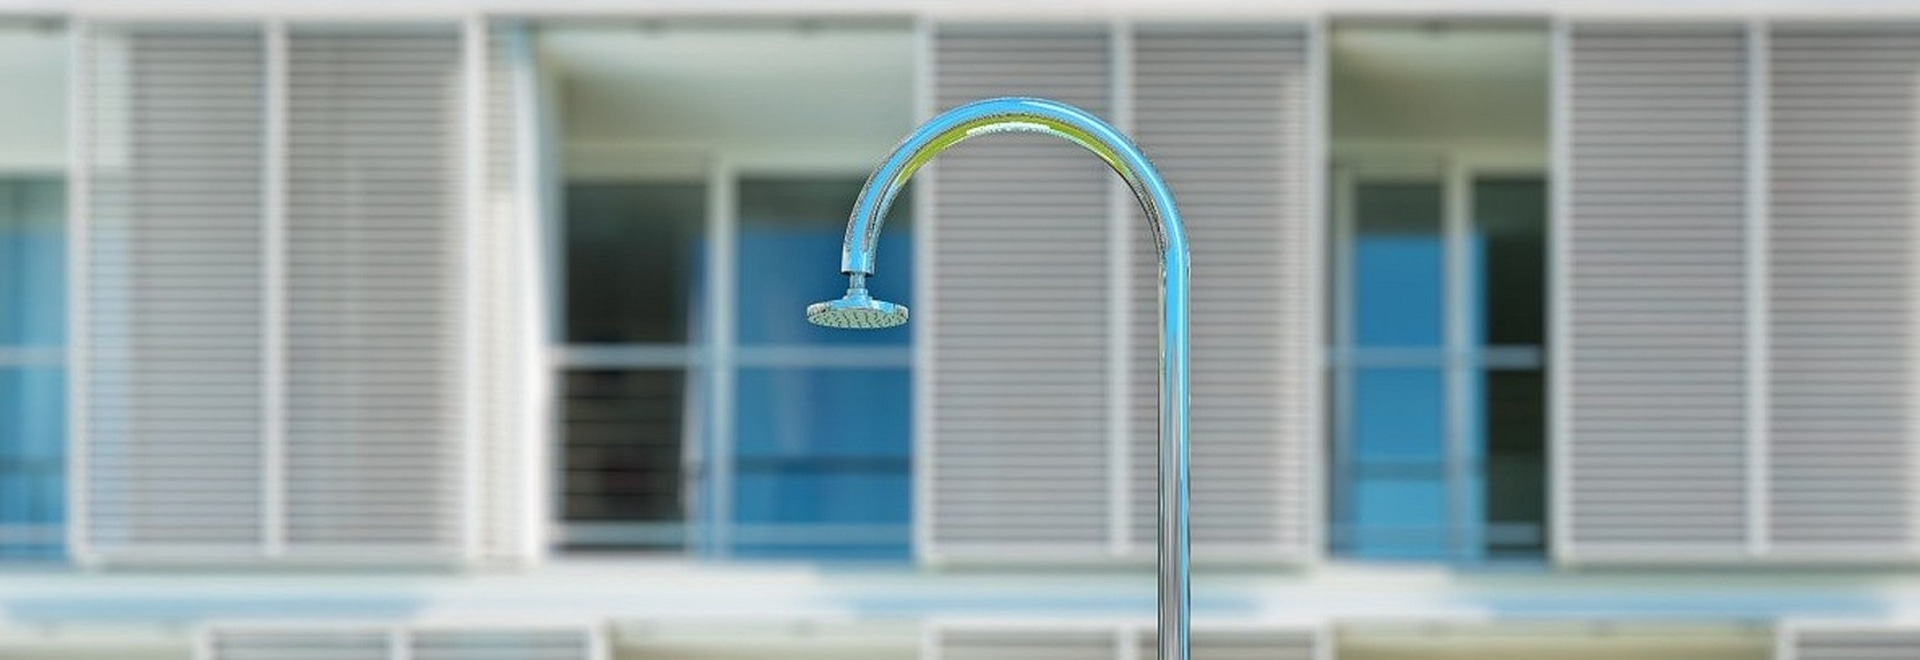 Sole 48 - luxury shower for outdoor, swimming pool, garden, yacht